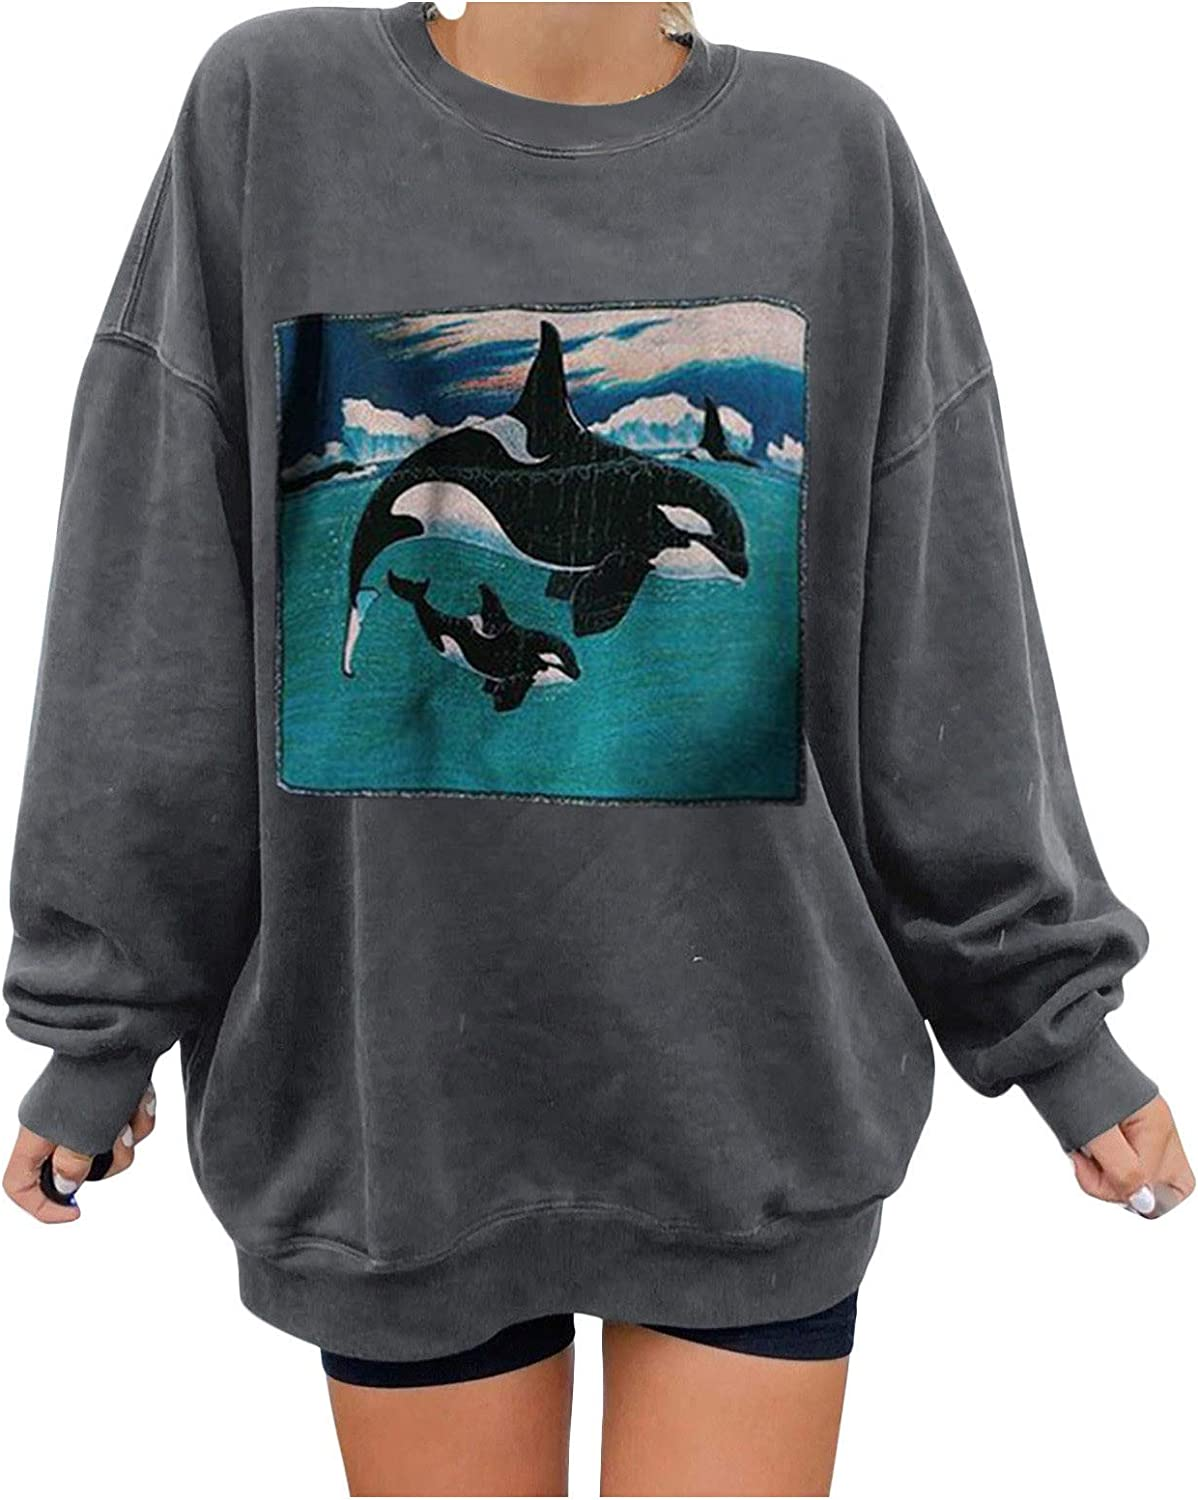 Sweatshirts for Women Crewneck Long Sleeve Pullover Cute Whale Pattern Blouse Loose Casual Warm Tops